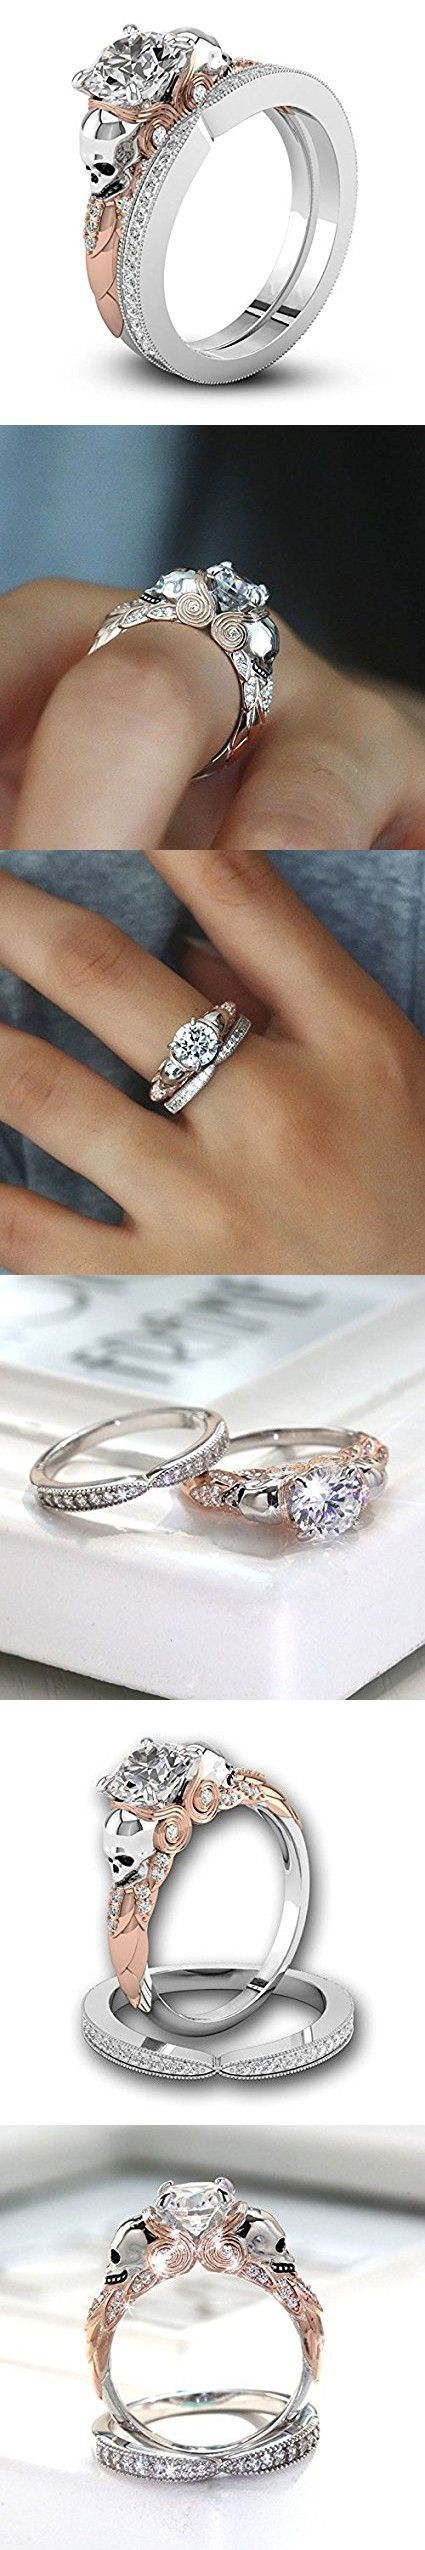 Two Tone Round Cut White Sapphire Skull Promise Ring 925 Silver Women Ring Set#by pimchanok shop (6, White)